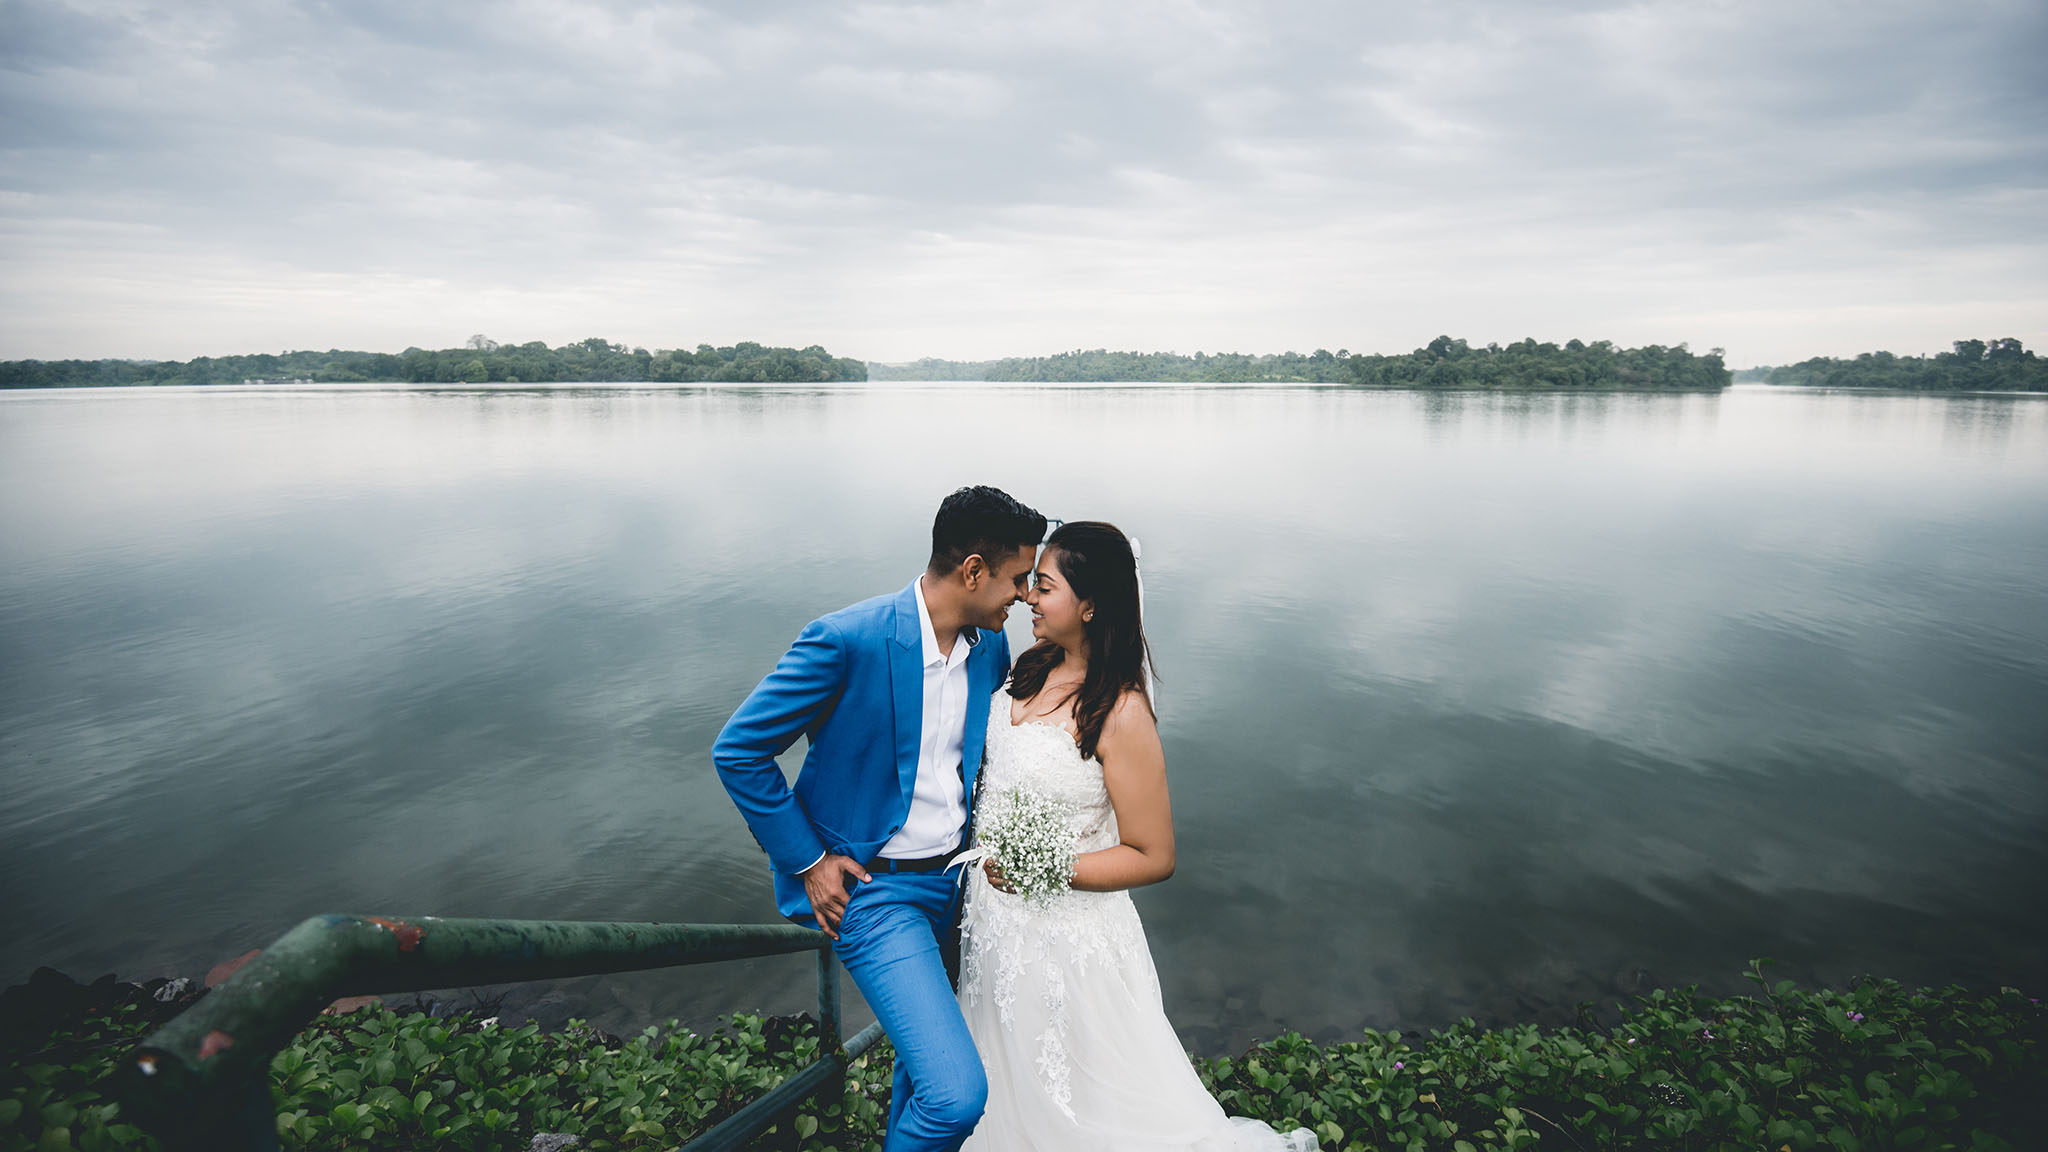 1 Prewedding upper seletar 00003.JPG